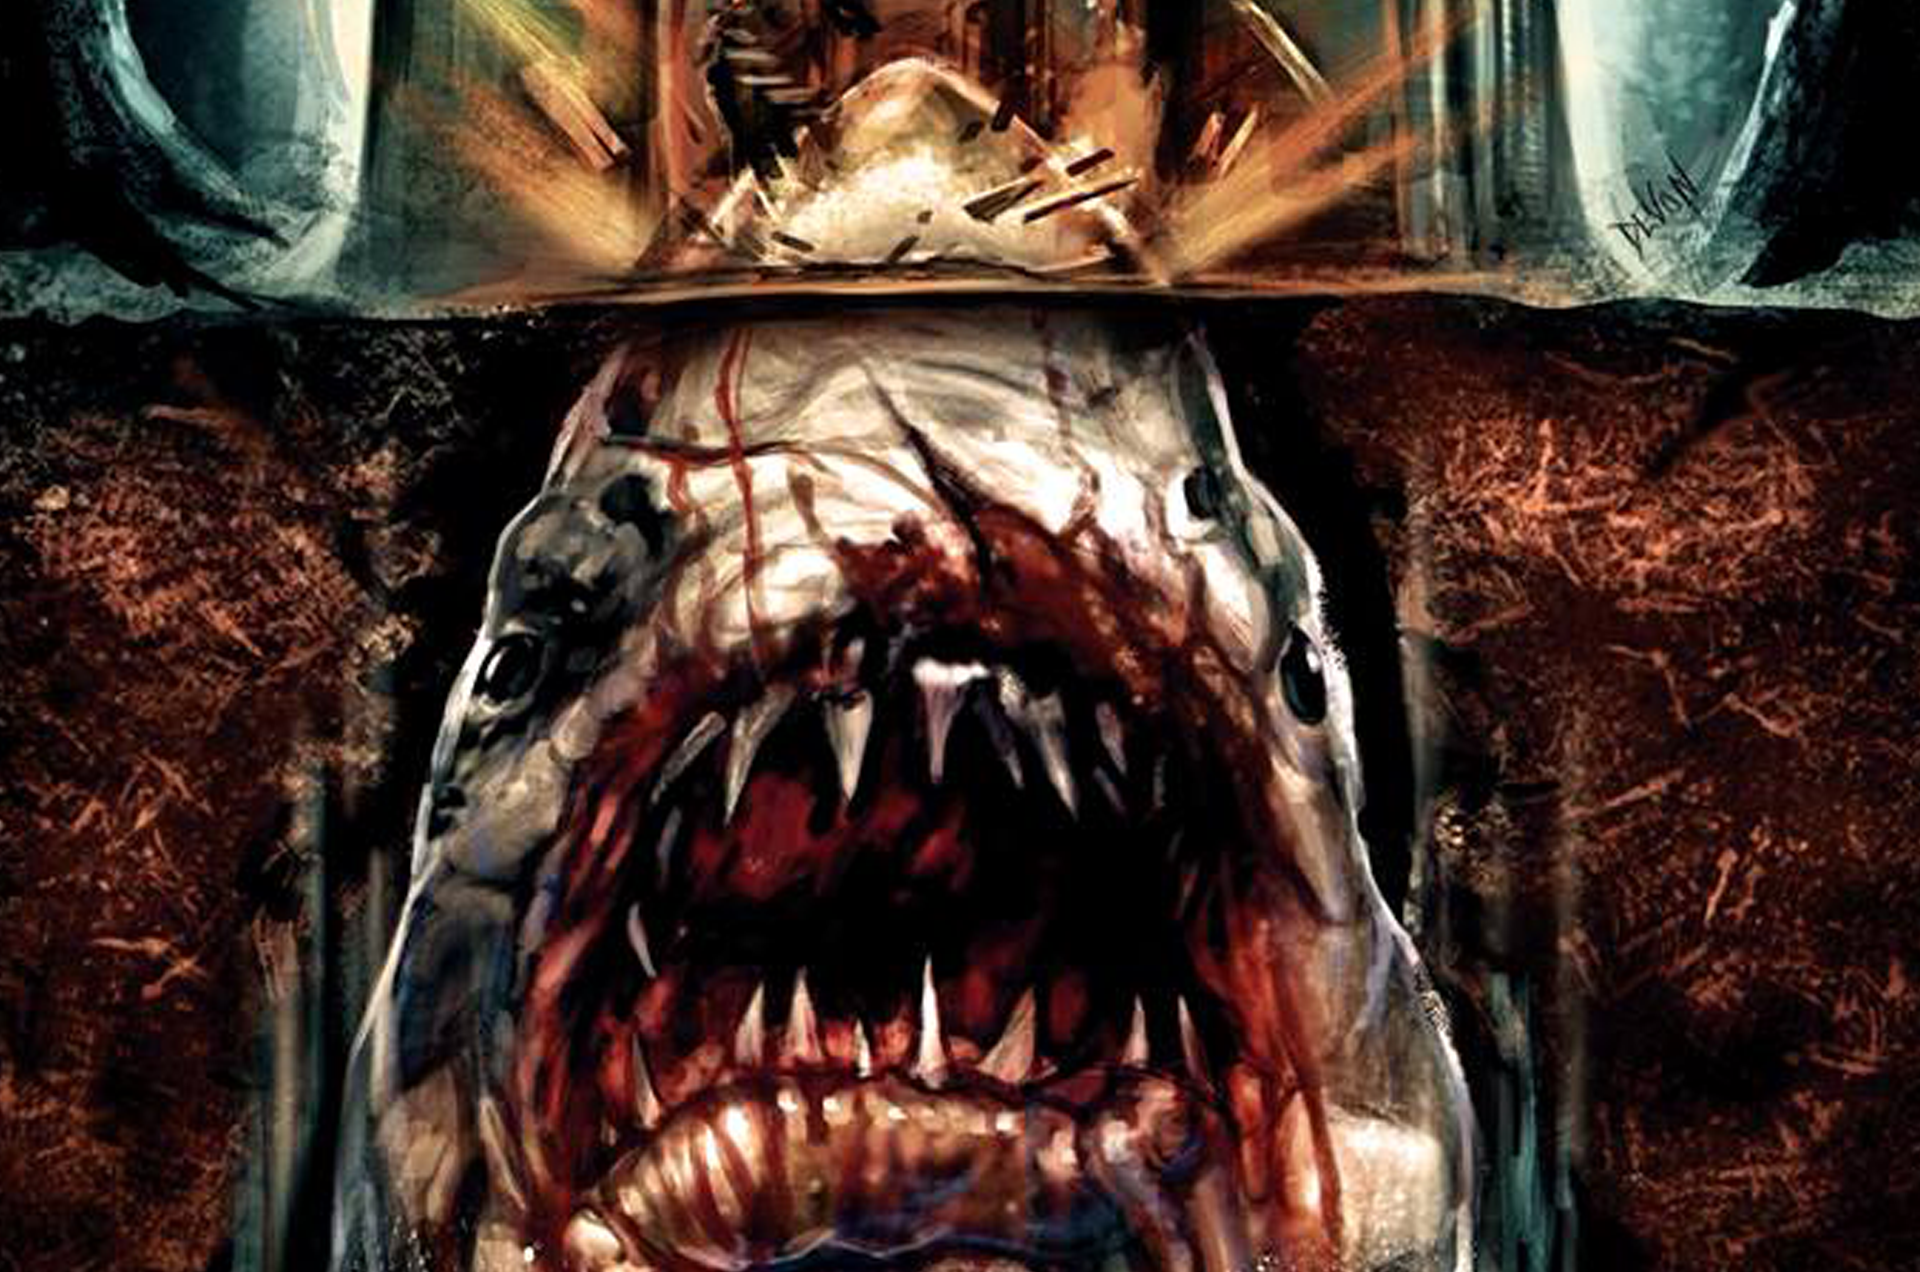 JAWS… in a house